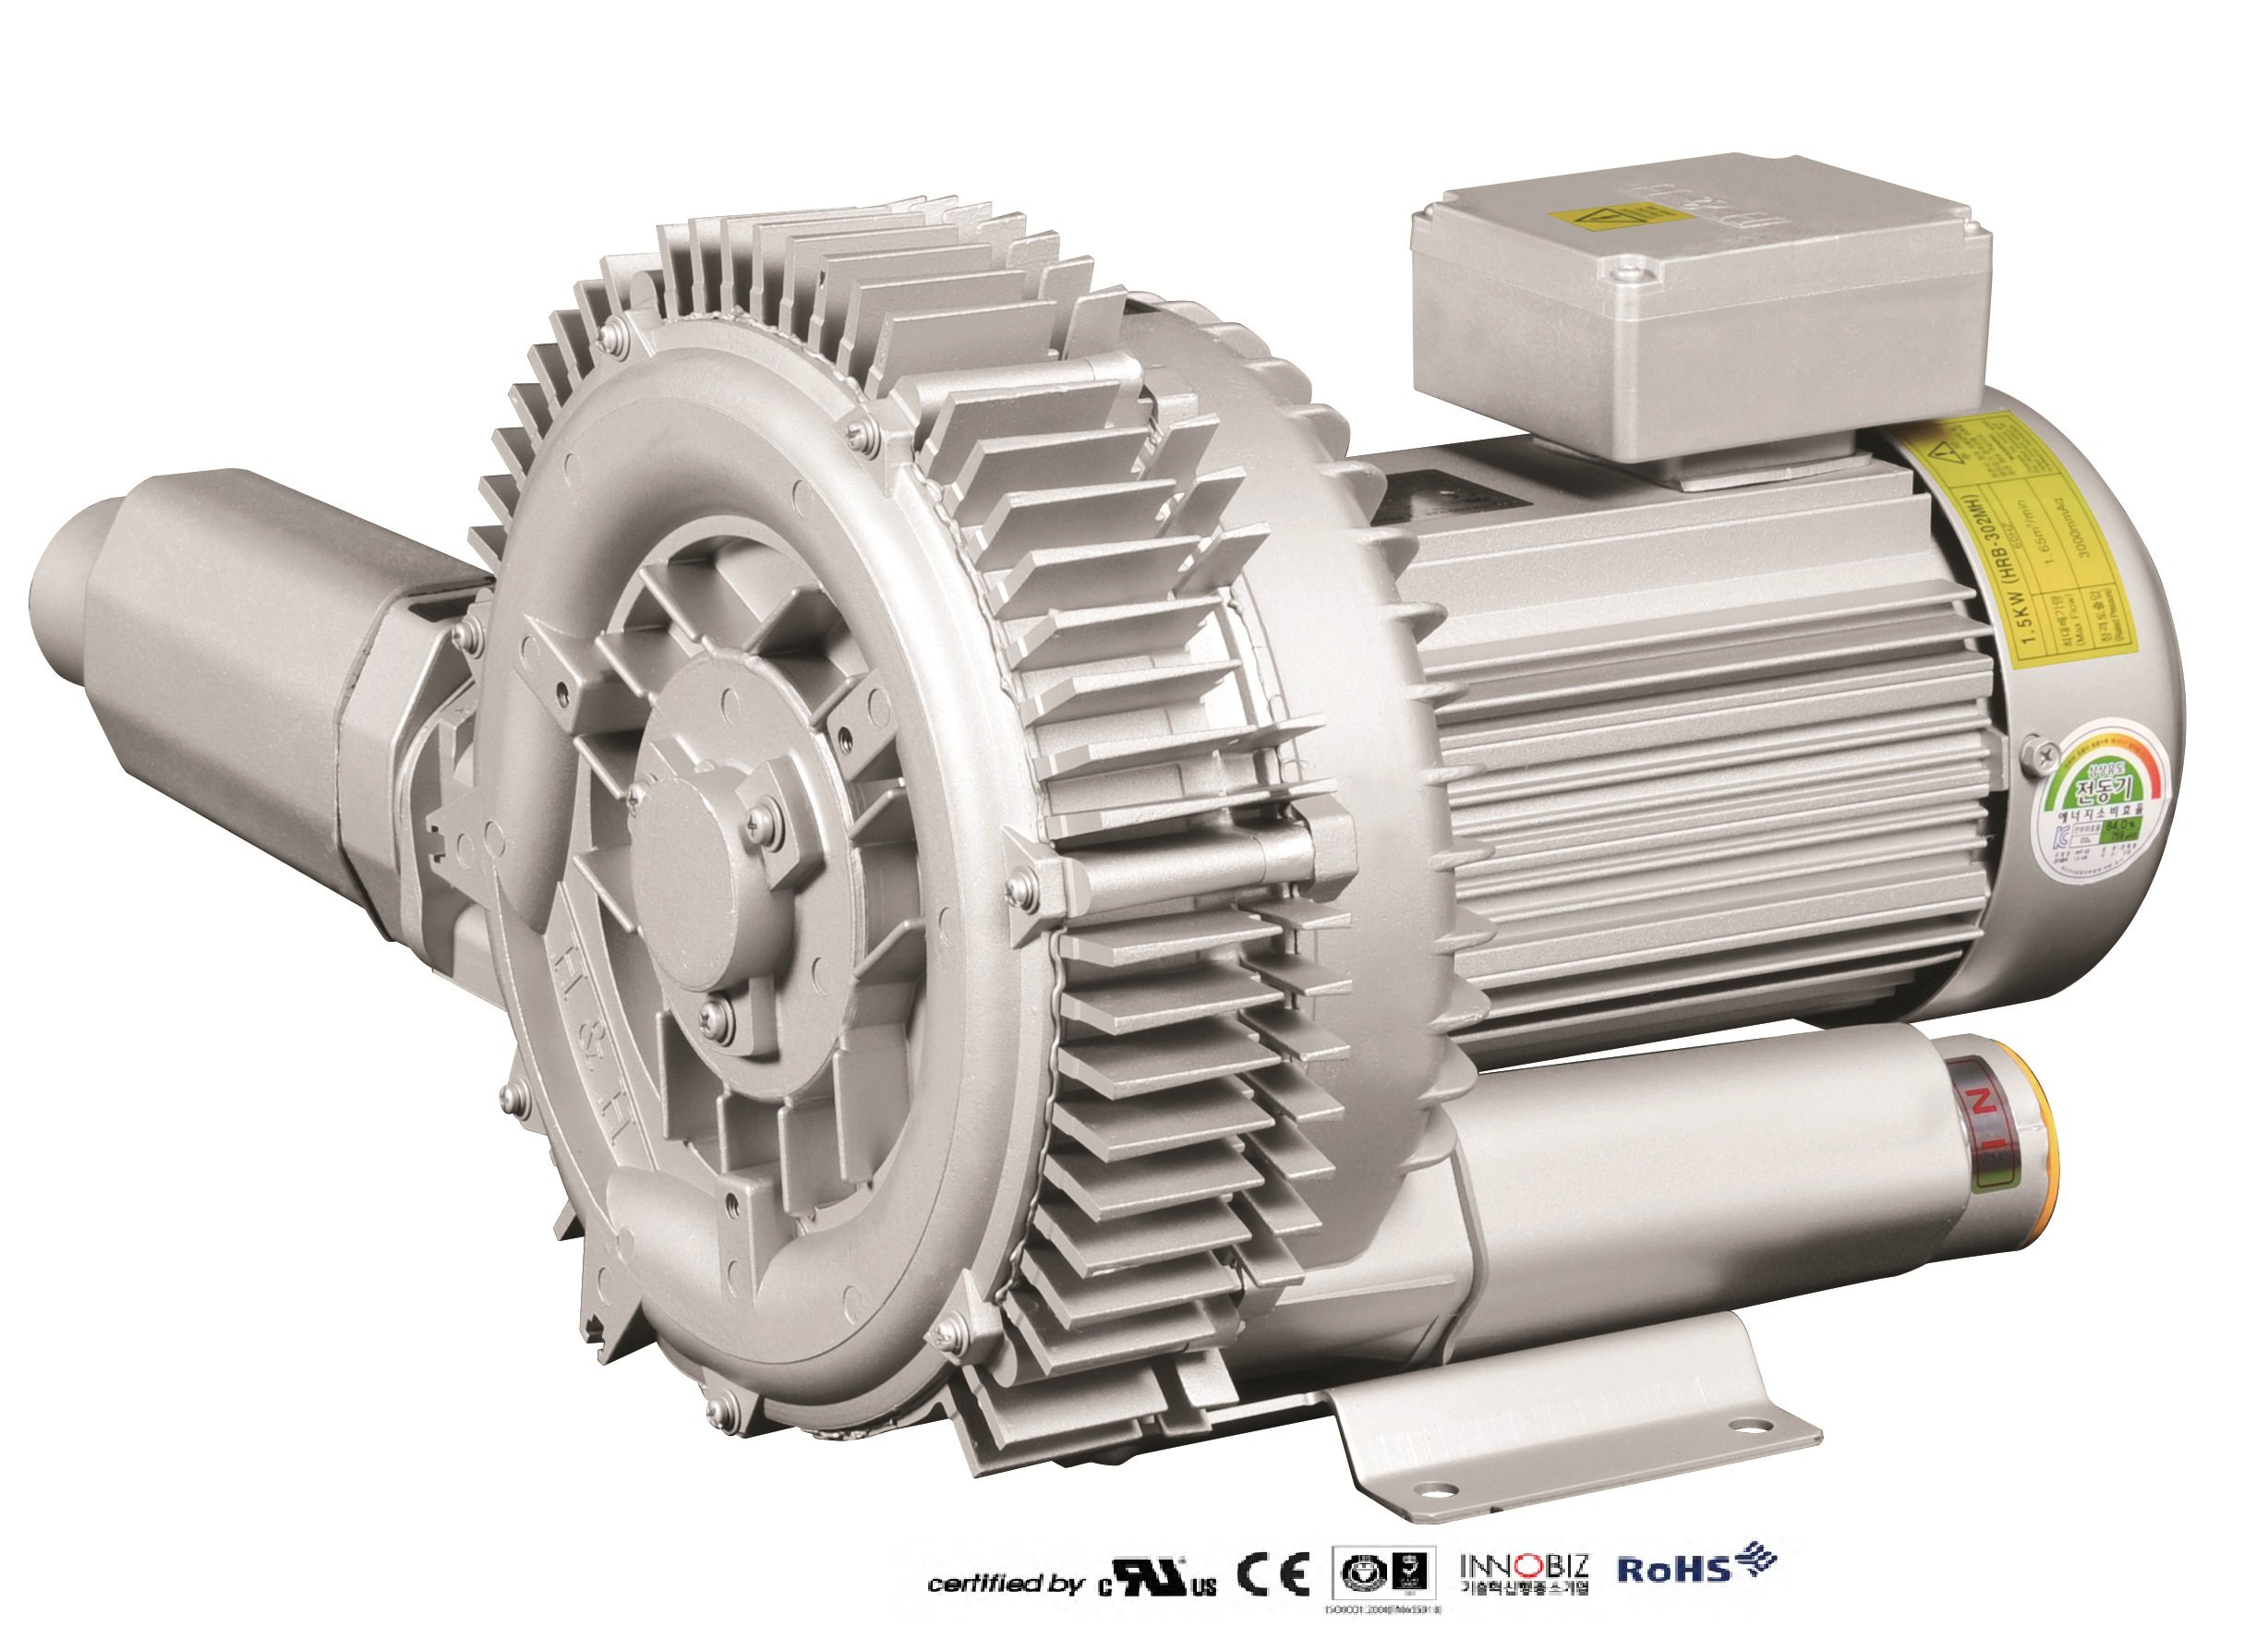 Pacific Regenerative Blower PB-302 (HRB-302), Ring, Side channel, Vacuum Pressure Blowers